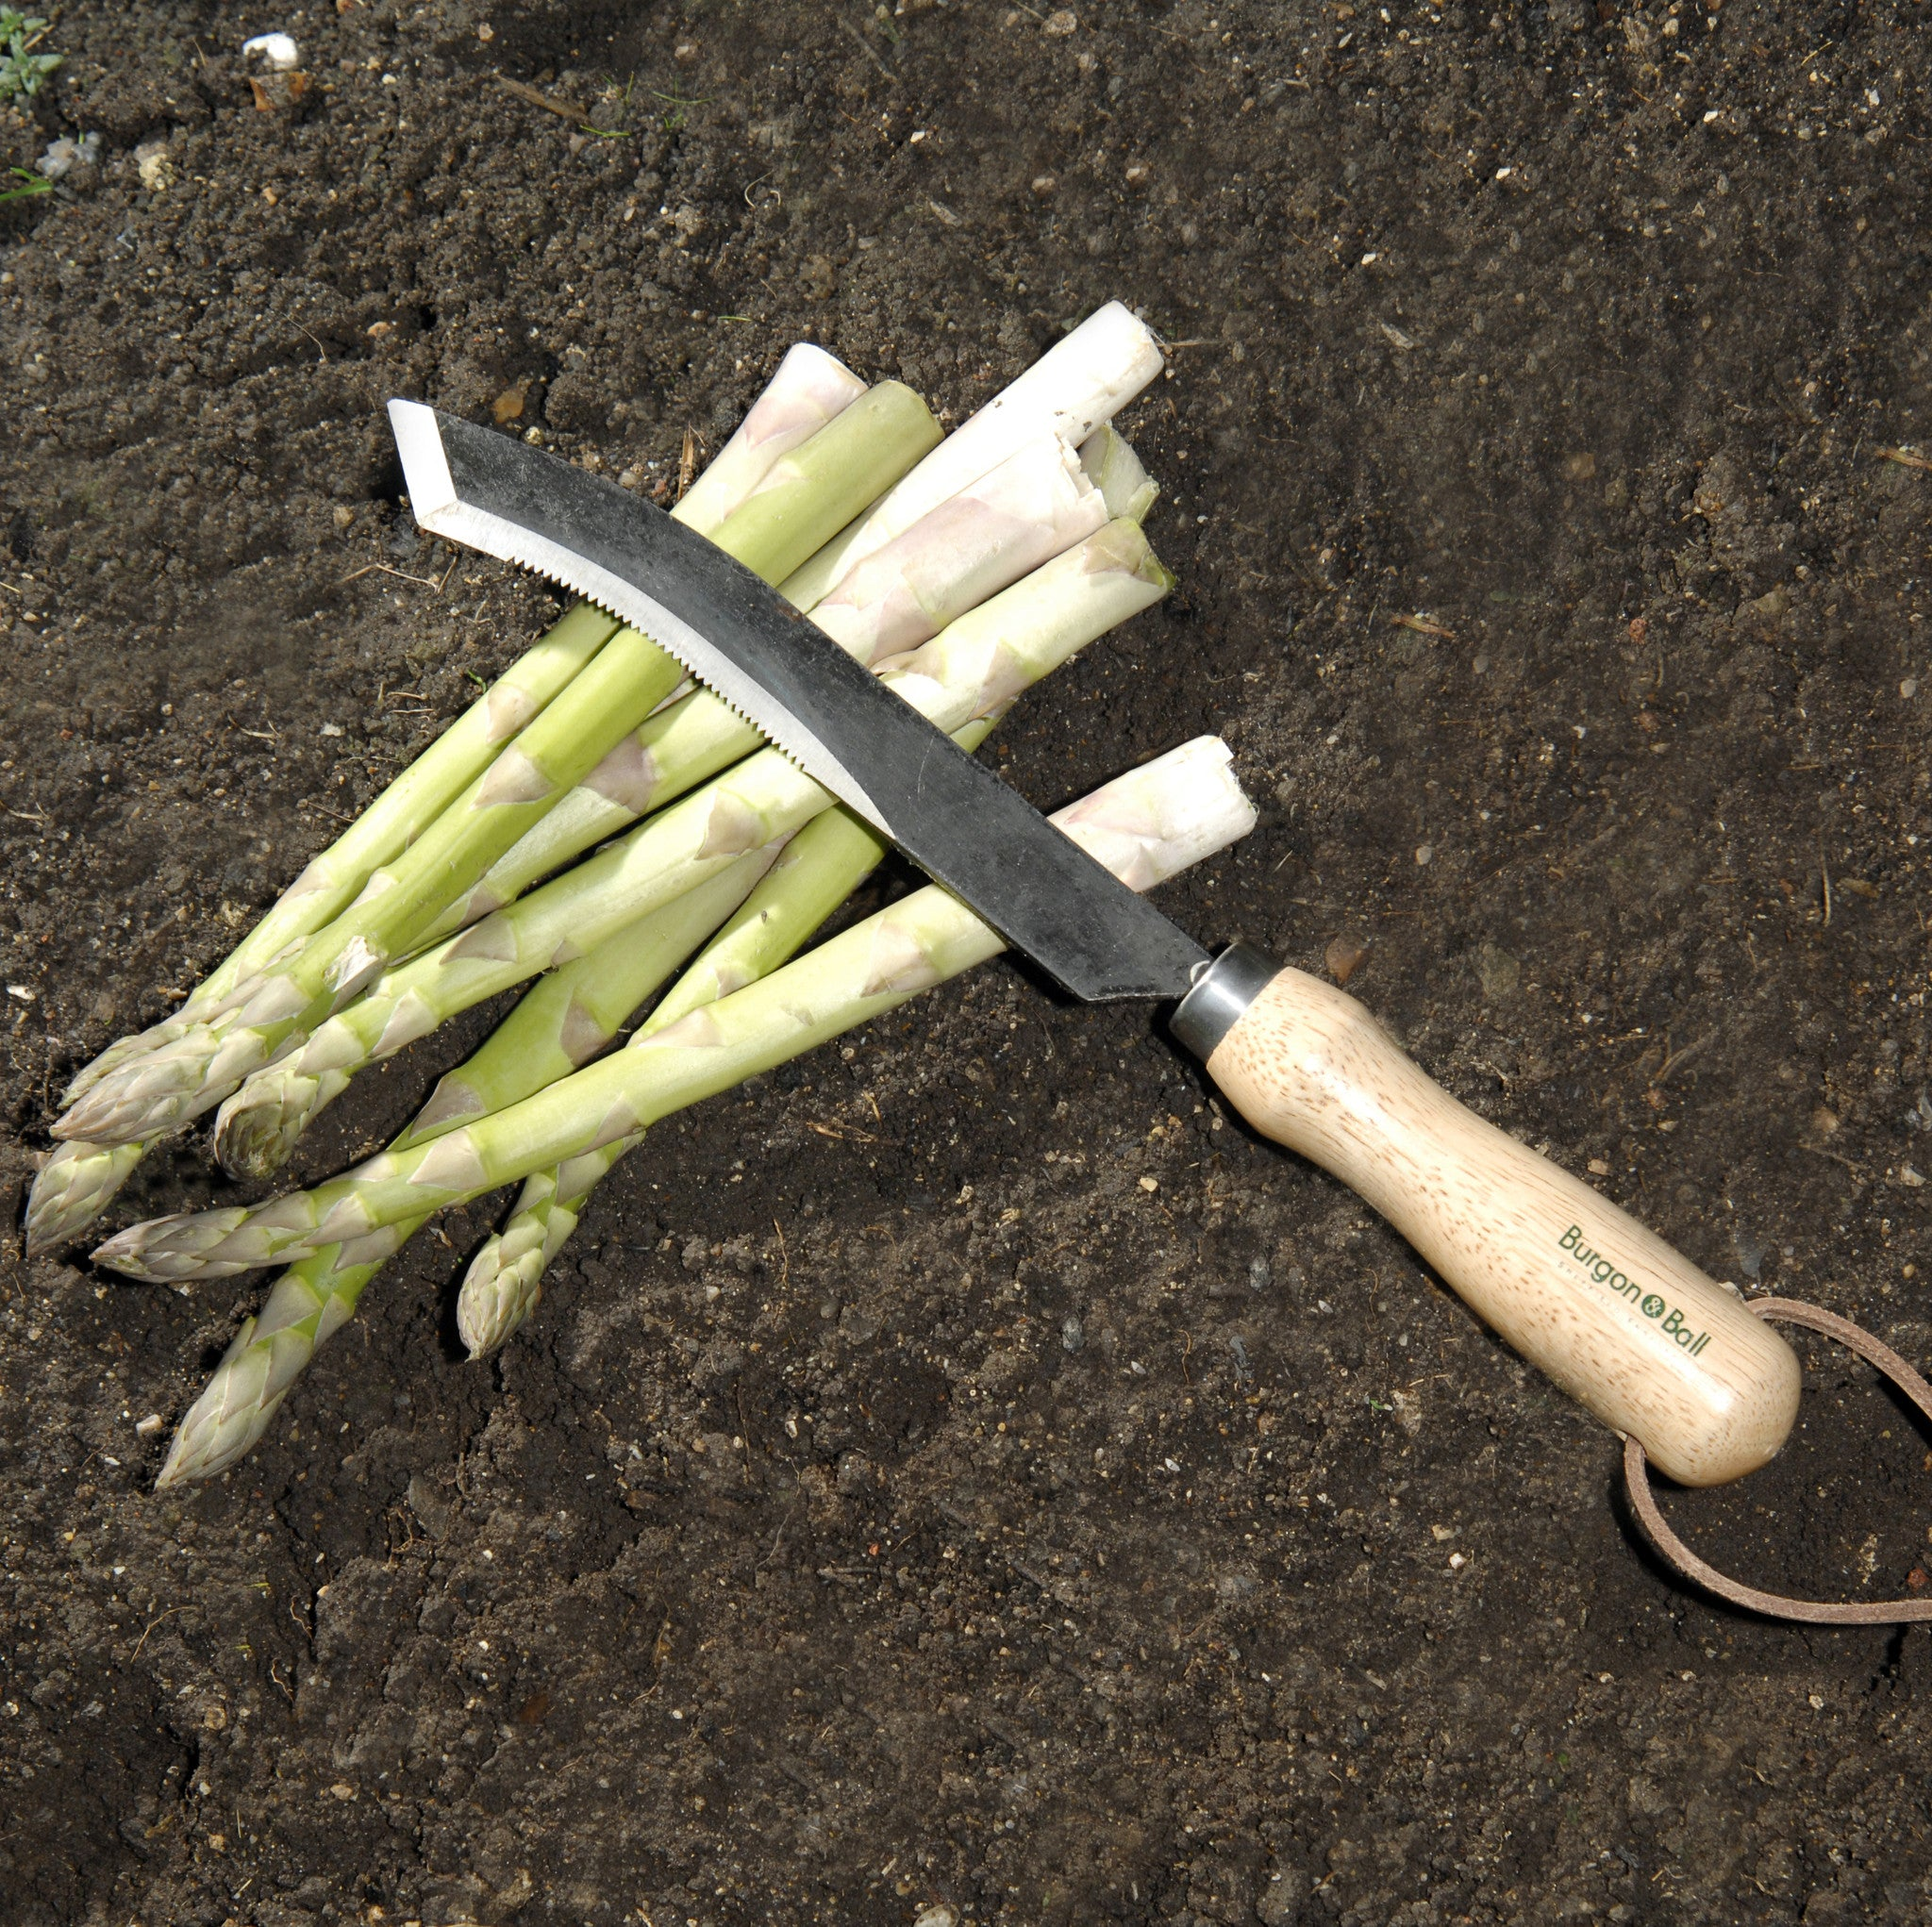 Asparagus Knife - The Potting Shed Garden Tools